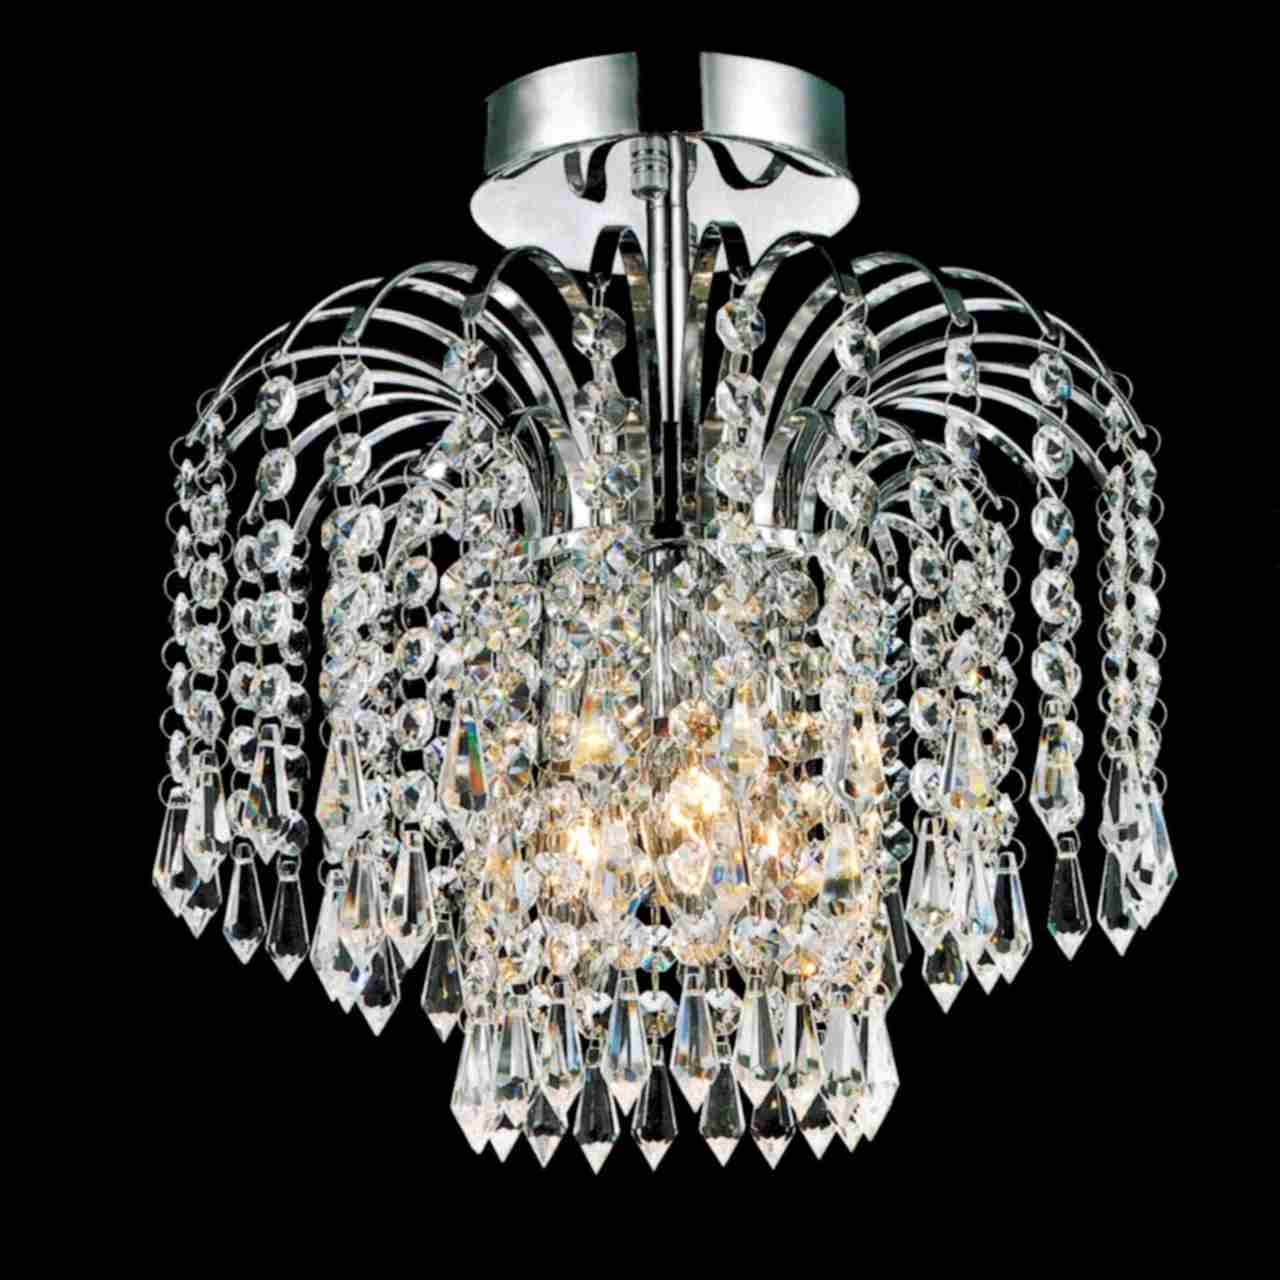 Brizzo Lighting Stores 12 Fountain Crystal Semi Flush Mount Throughout Small Chrome Chandelier (View 10 of 15)